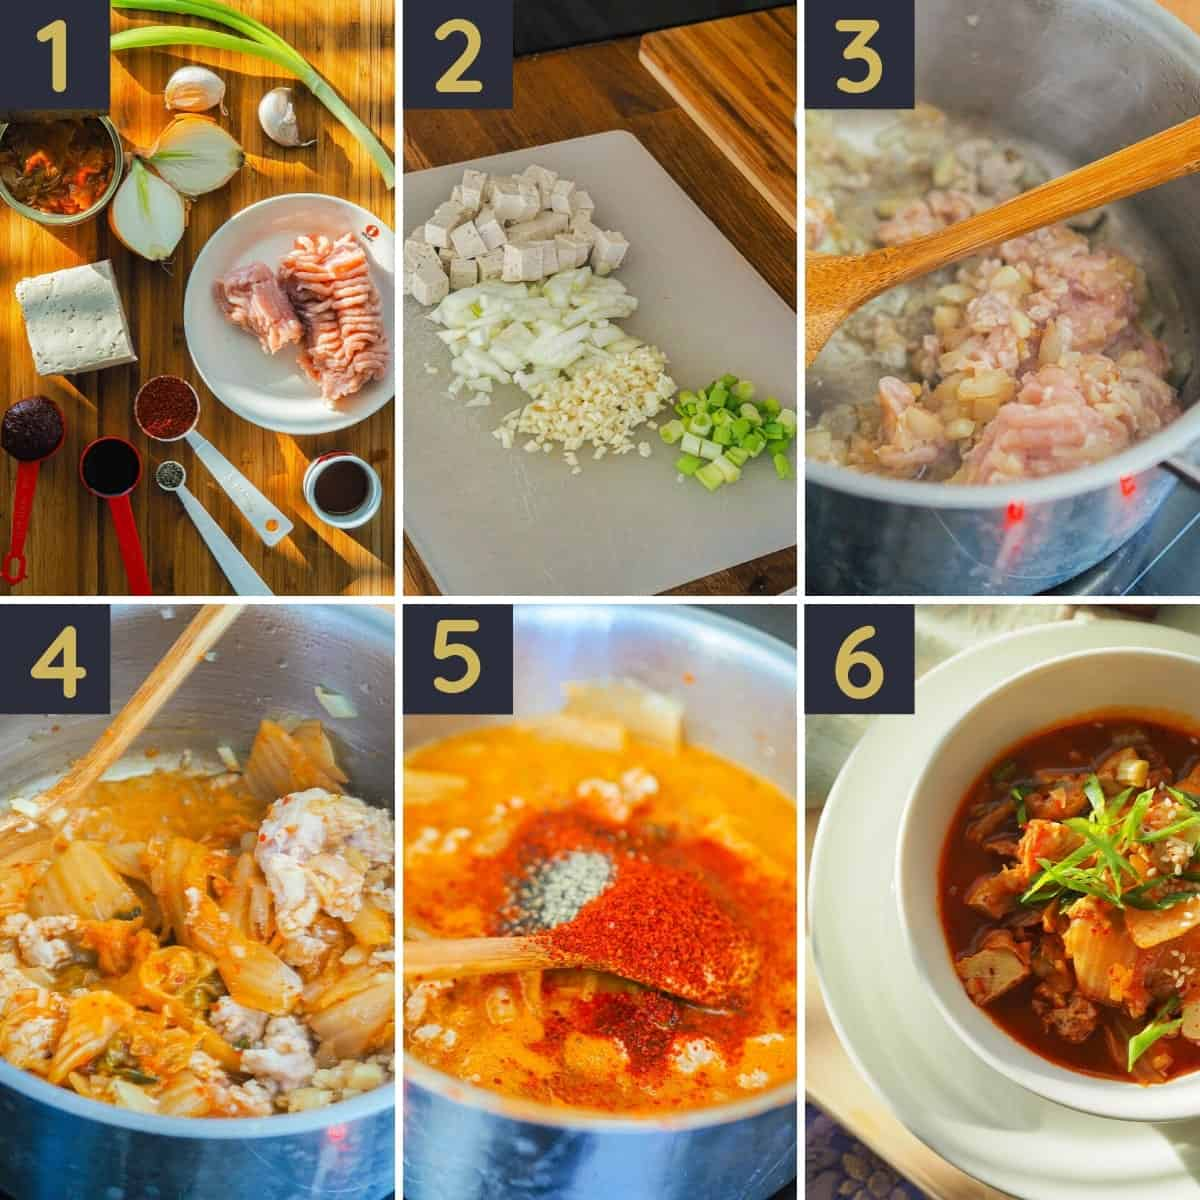 Kimchi Stew Recipe with Chicken STEP BY STEP GUIDE